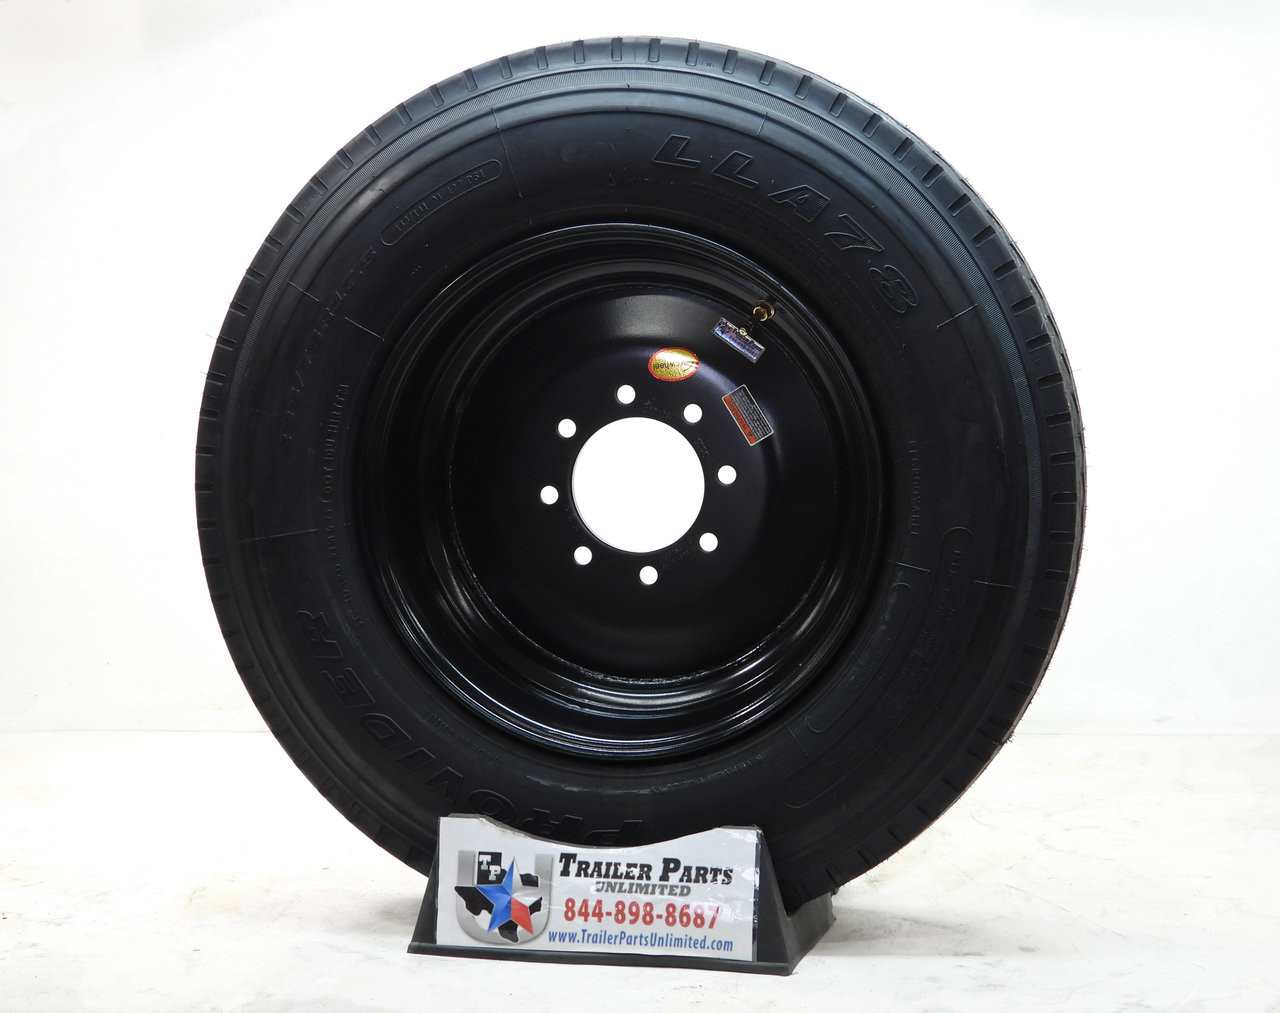 "235/75R17.5 18-Ply Provider All Steel Tire on Black Solid Wheel 8x6.5"" .19os"